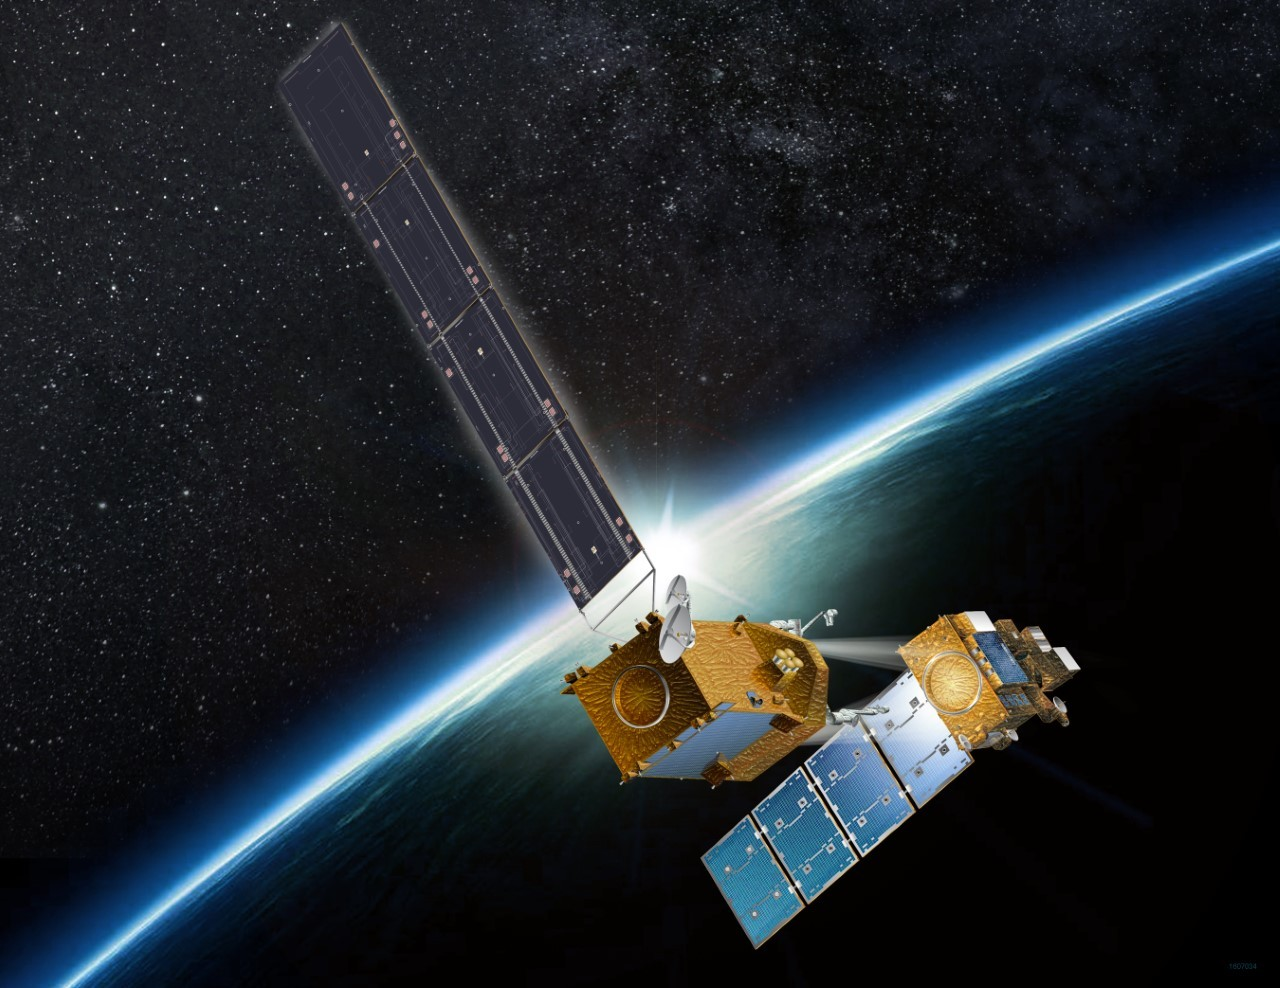 An illustration shows a satellite docking with another in space.